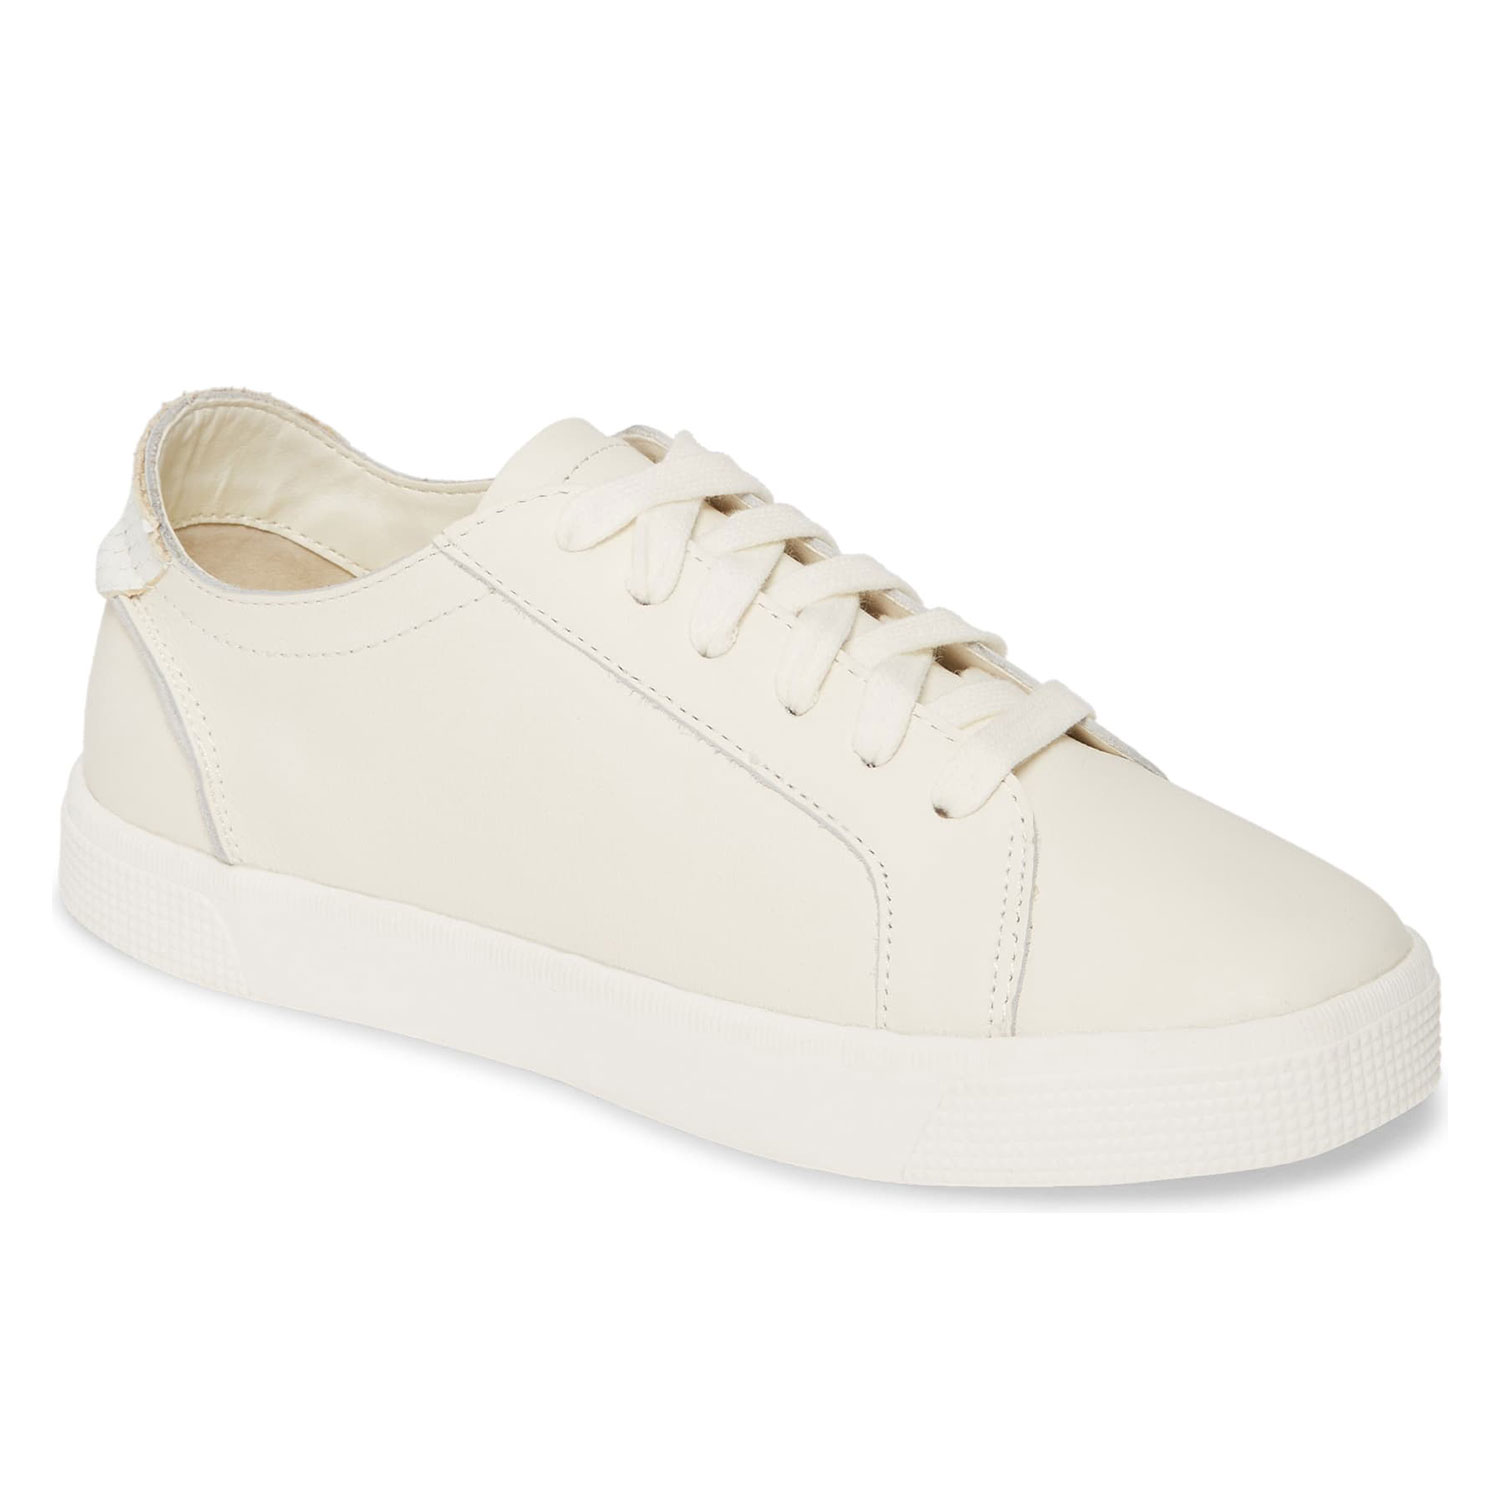 Treasure & Bond Ollie Low Top Sneaker